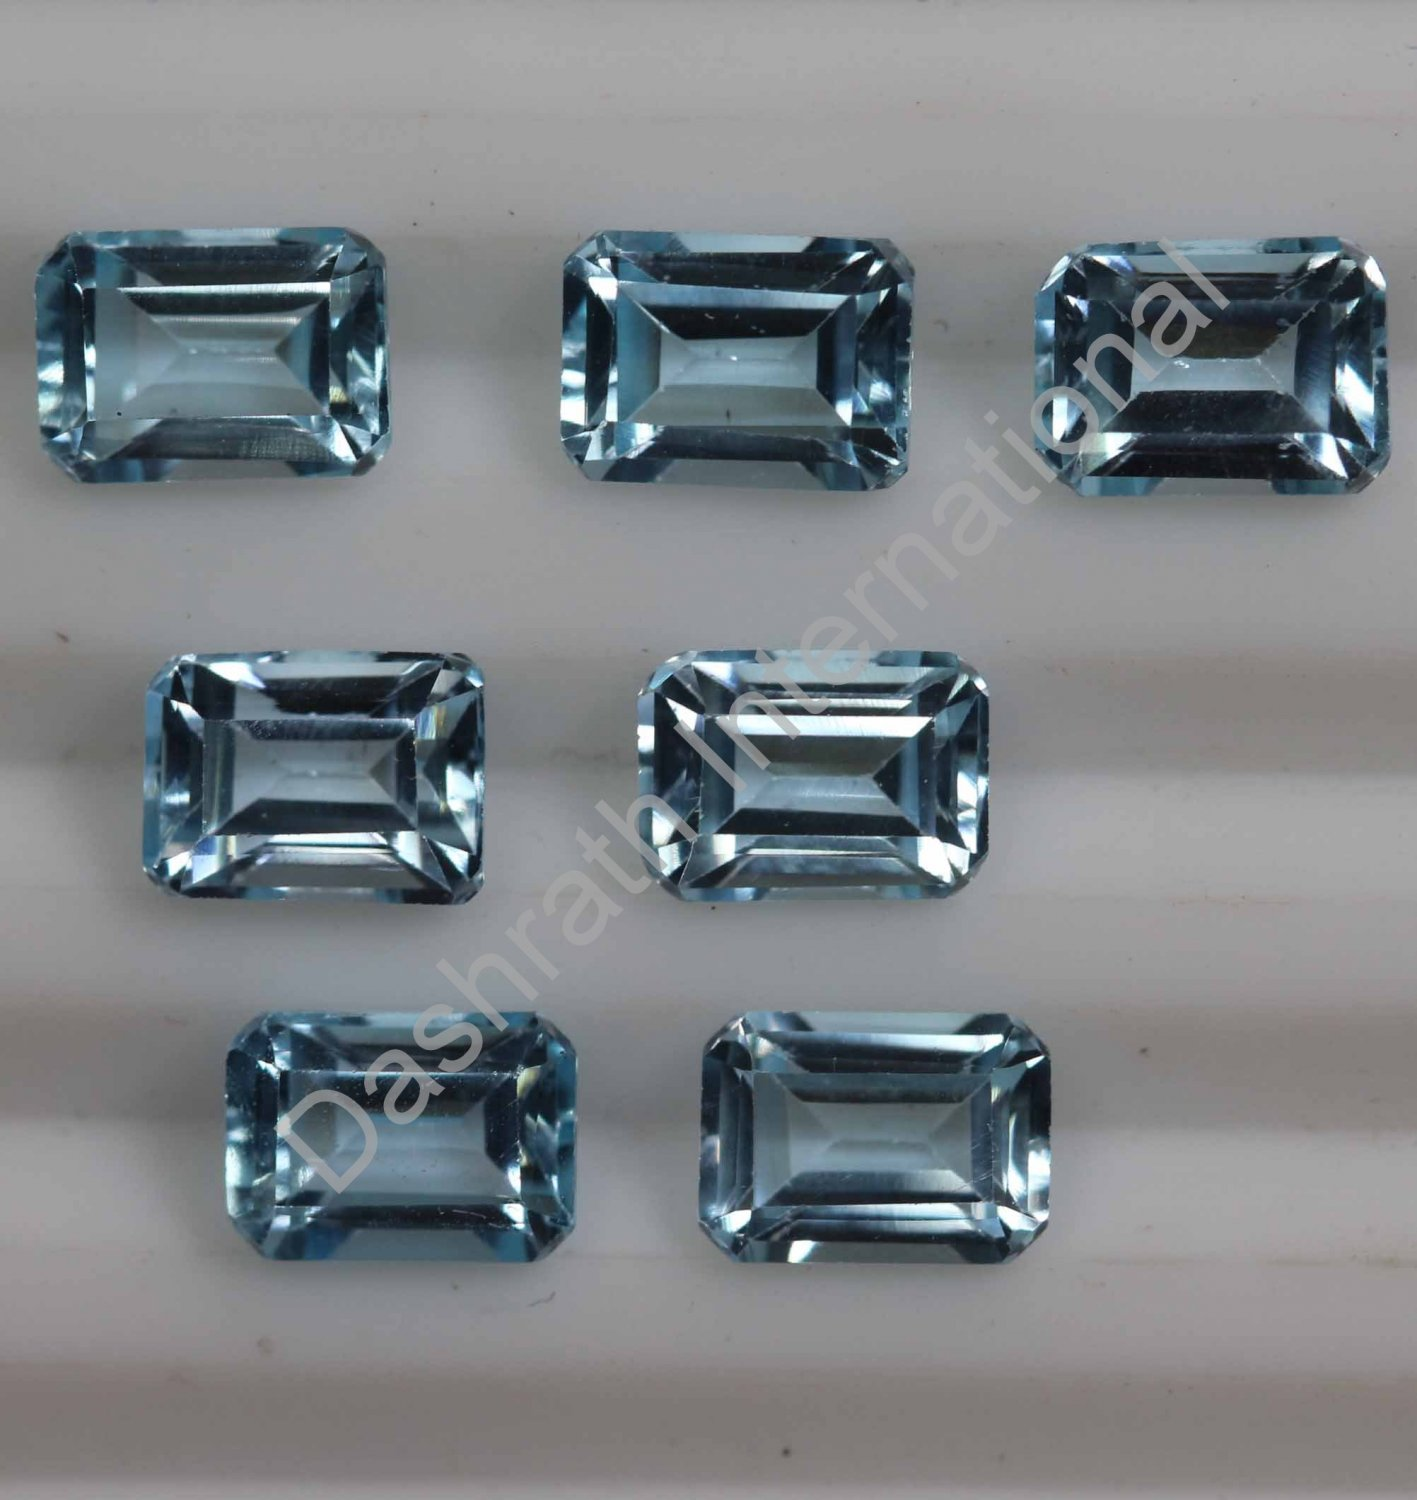 6x4mm Natural Sky Blue Topaz Faceted Cut Octagon 100 Pieces Lot  Top Quality Loose Gemstone